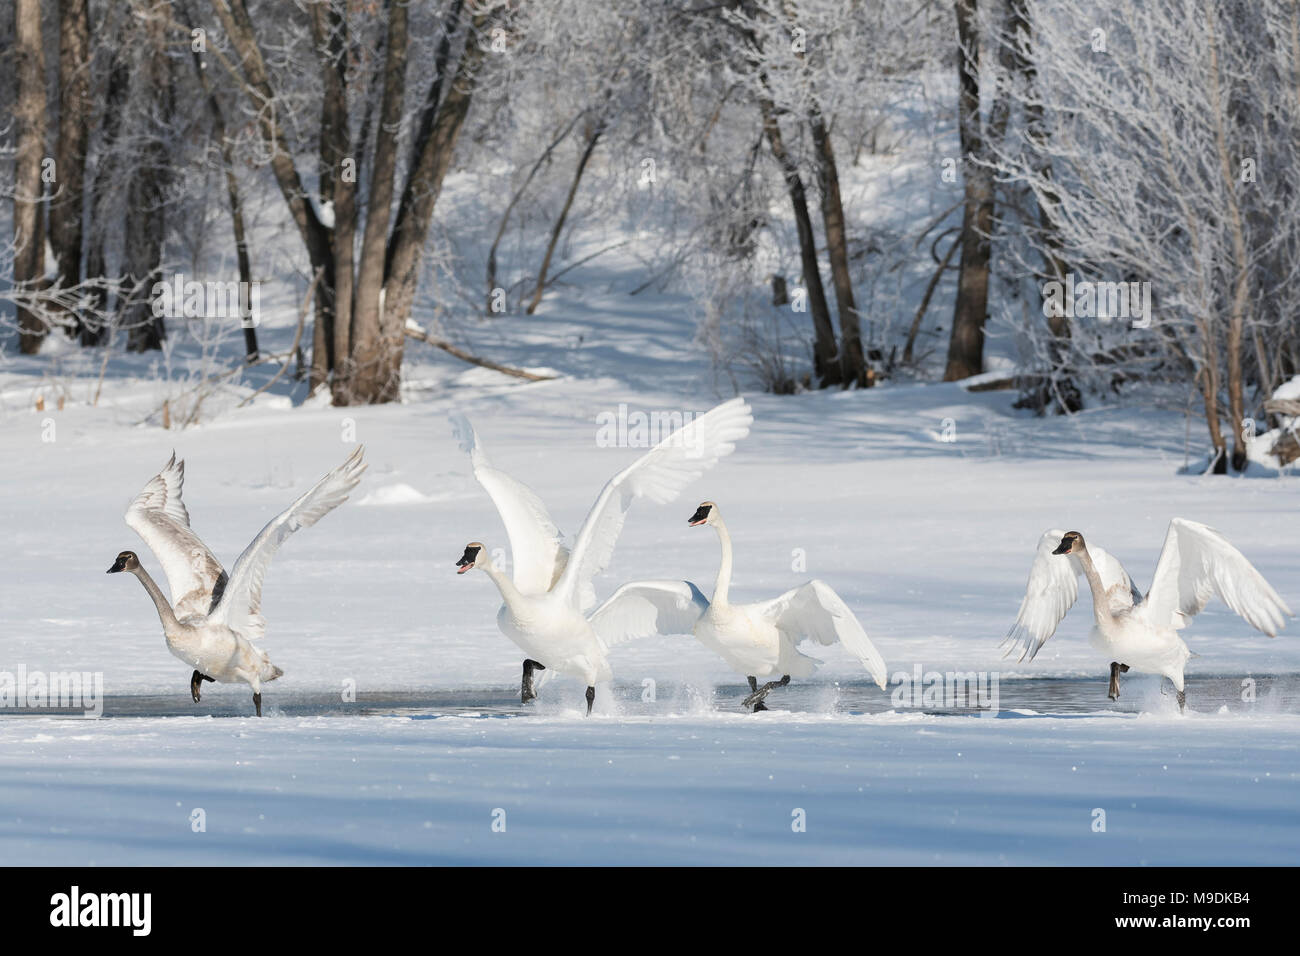 Trumpeter swans (Cygnus buccinator) taking off from the St. Croix river, WI, USA,Late February, by Dominique Braud/Dembinsky Photo Assoc - Stock Image